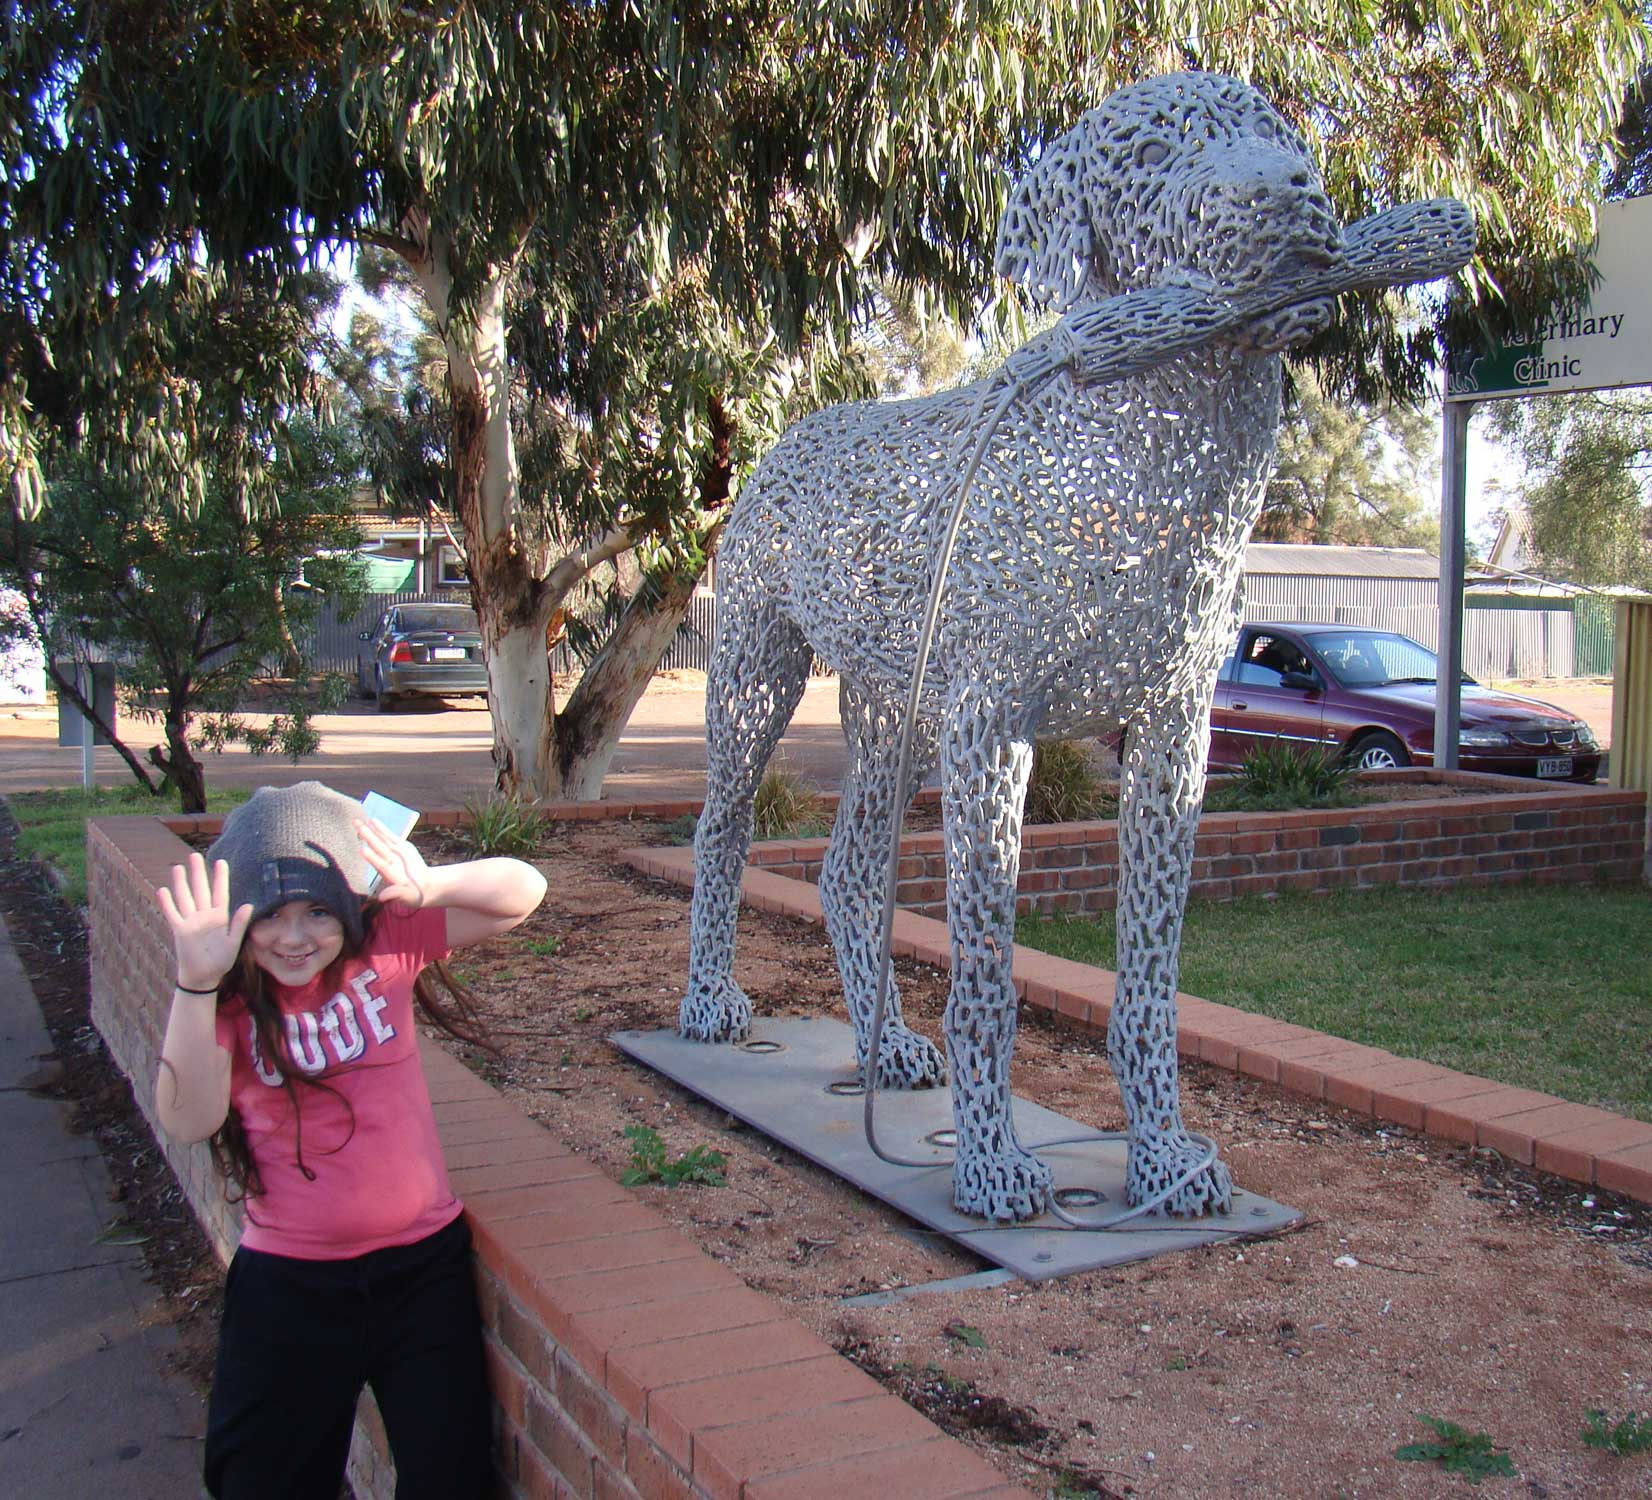 Tookii things to do with kids with the loaded dog in Whyalla one of the outdoor activities for kids